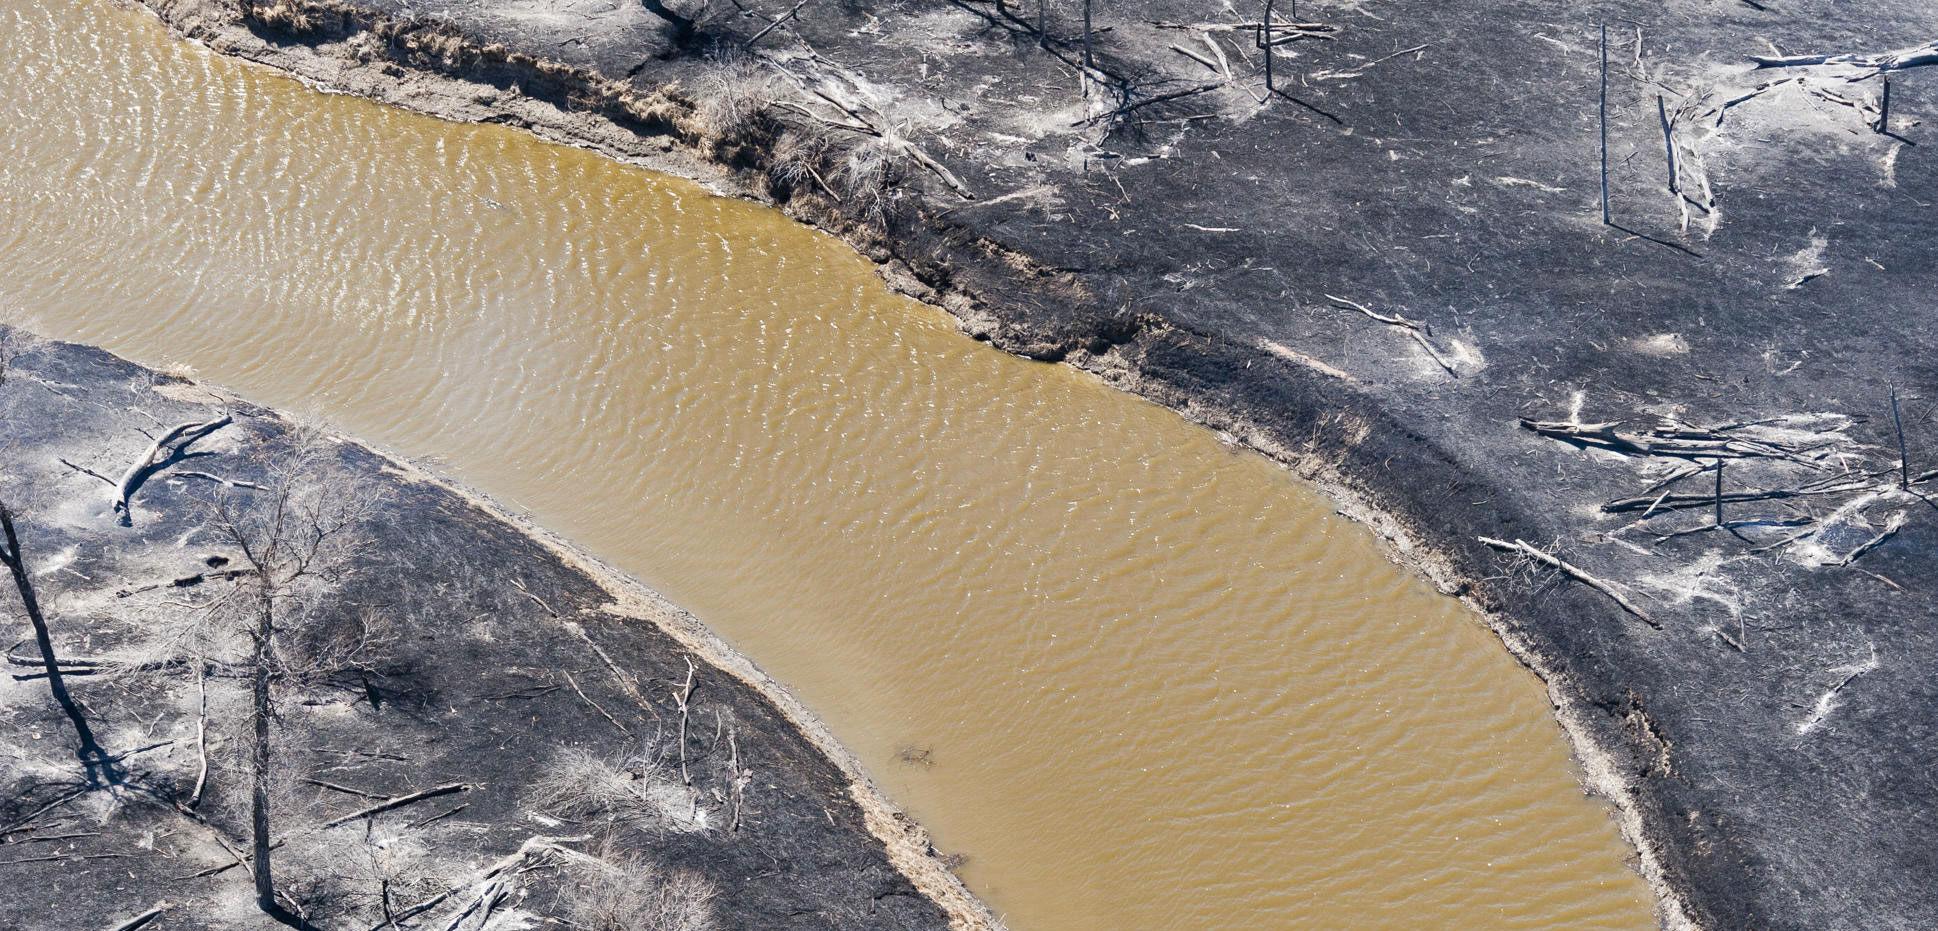 muddy river surrounded by charred aftermath of a wildfire